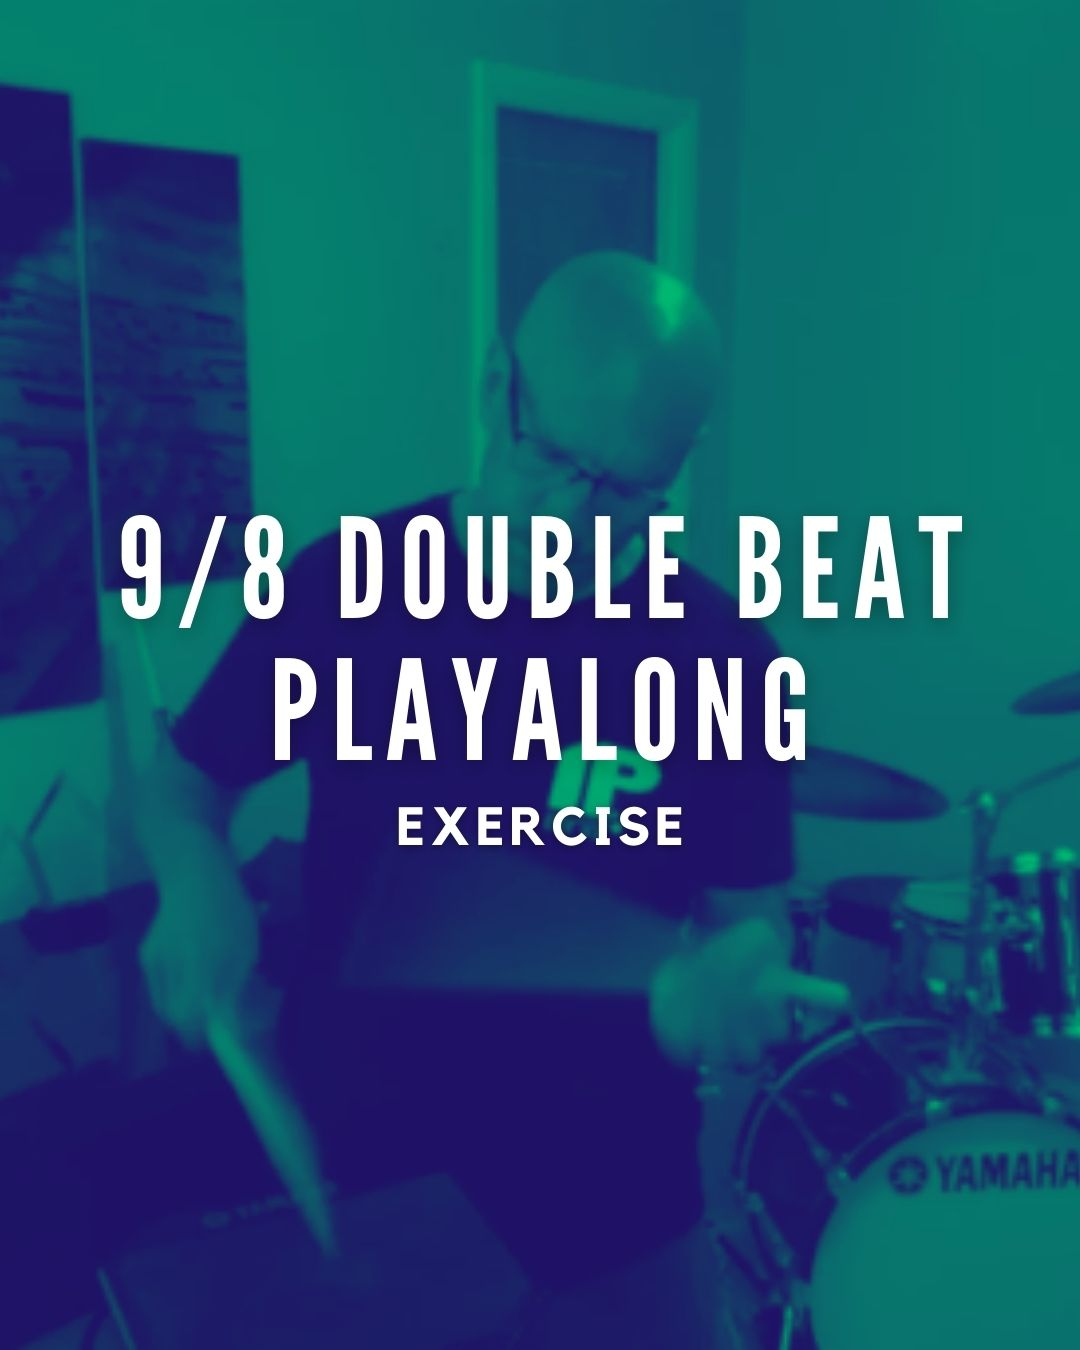 9/8 Double Beat Playalong